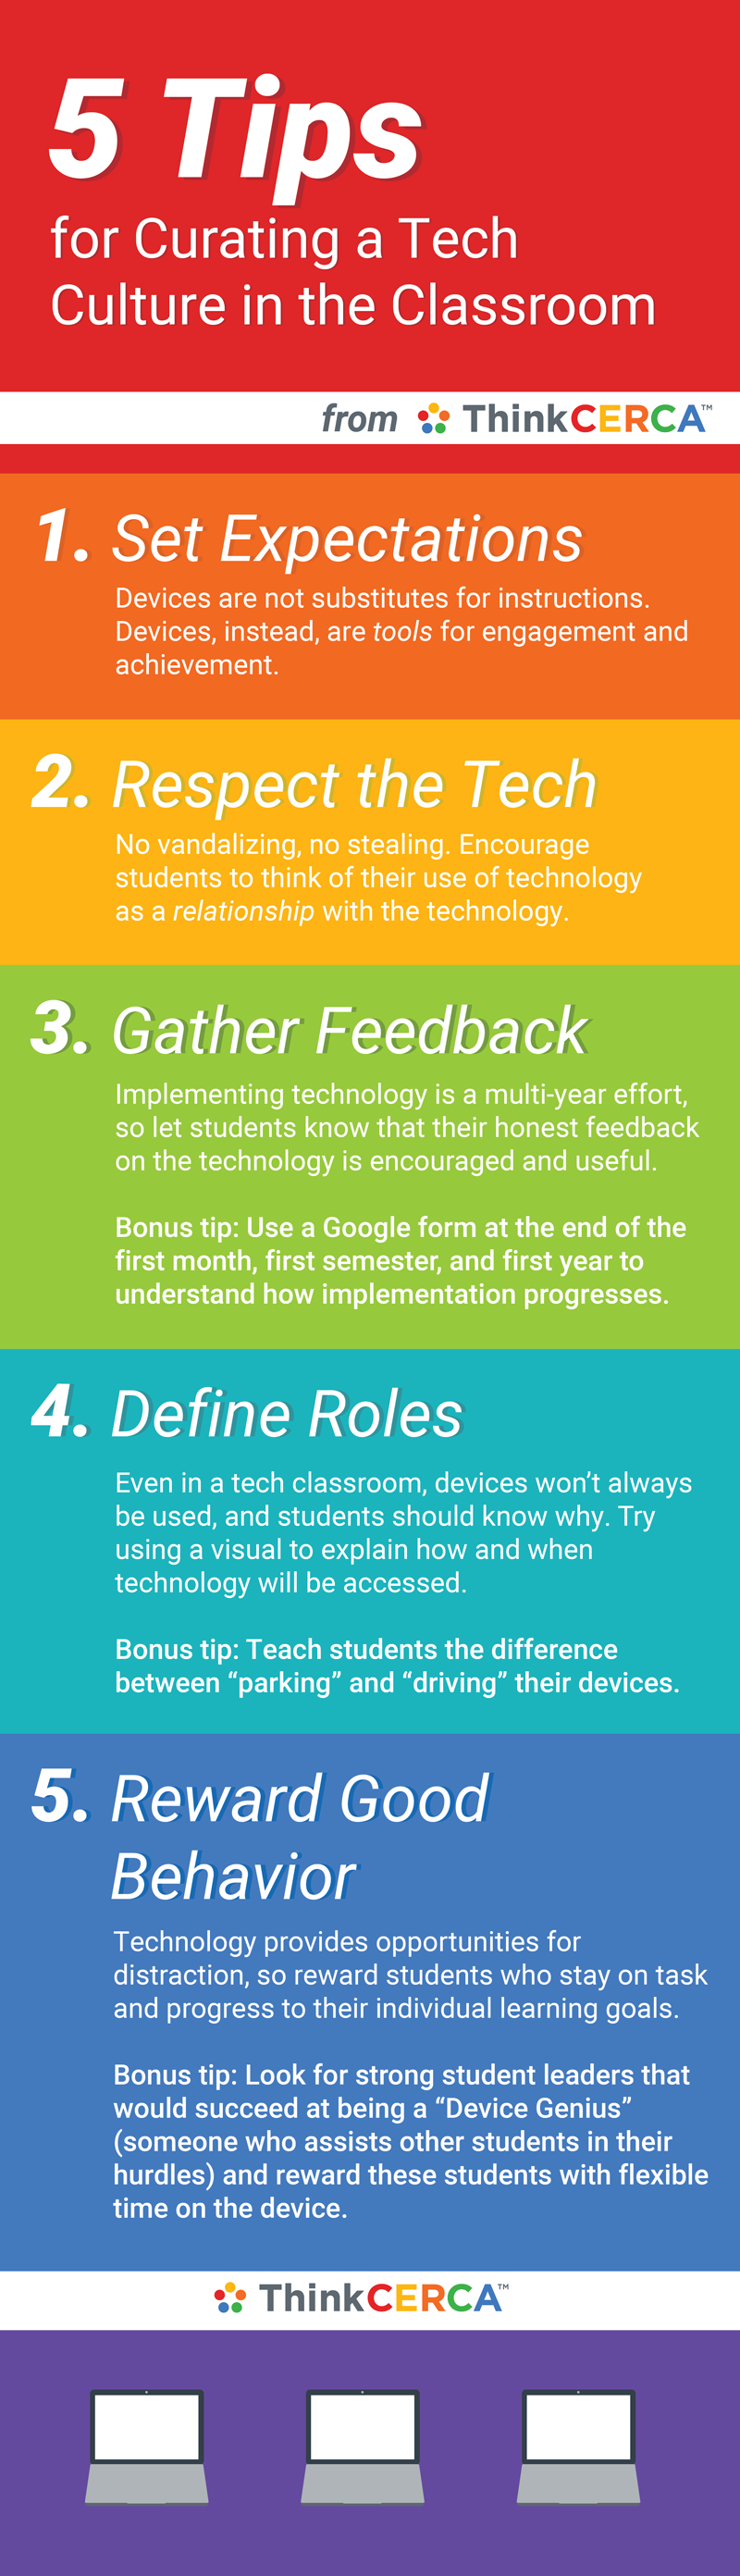 thinkcerca-infographic-implementing-tech_5-tips.png